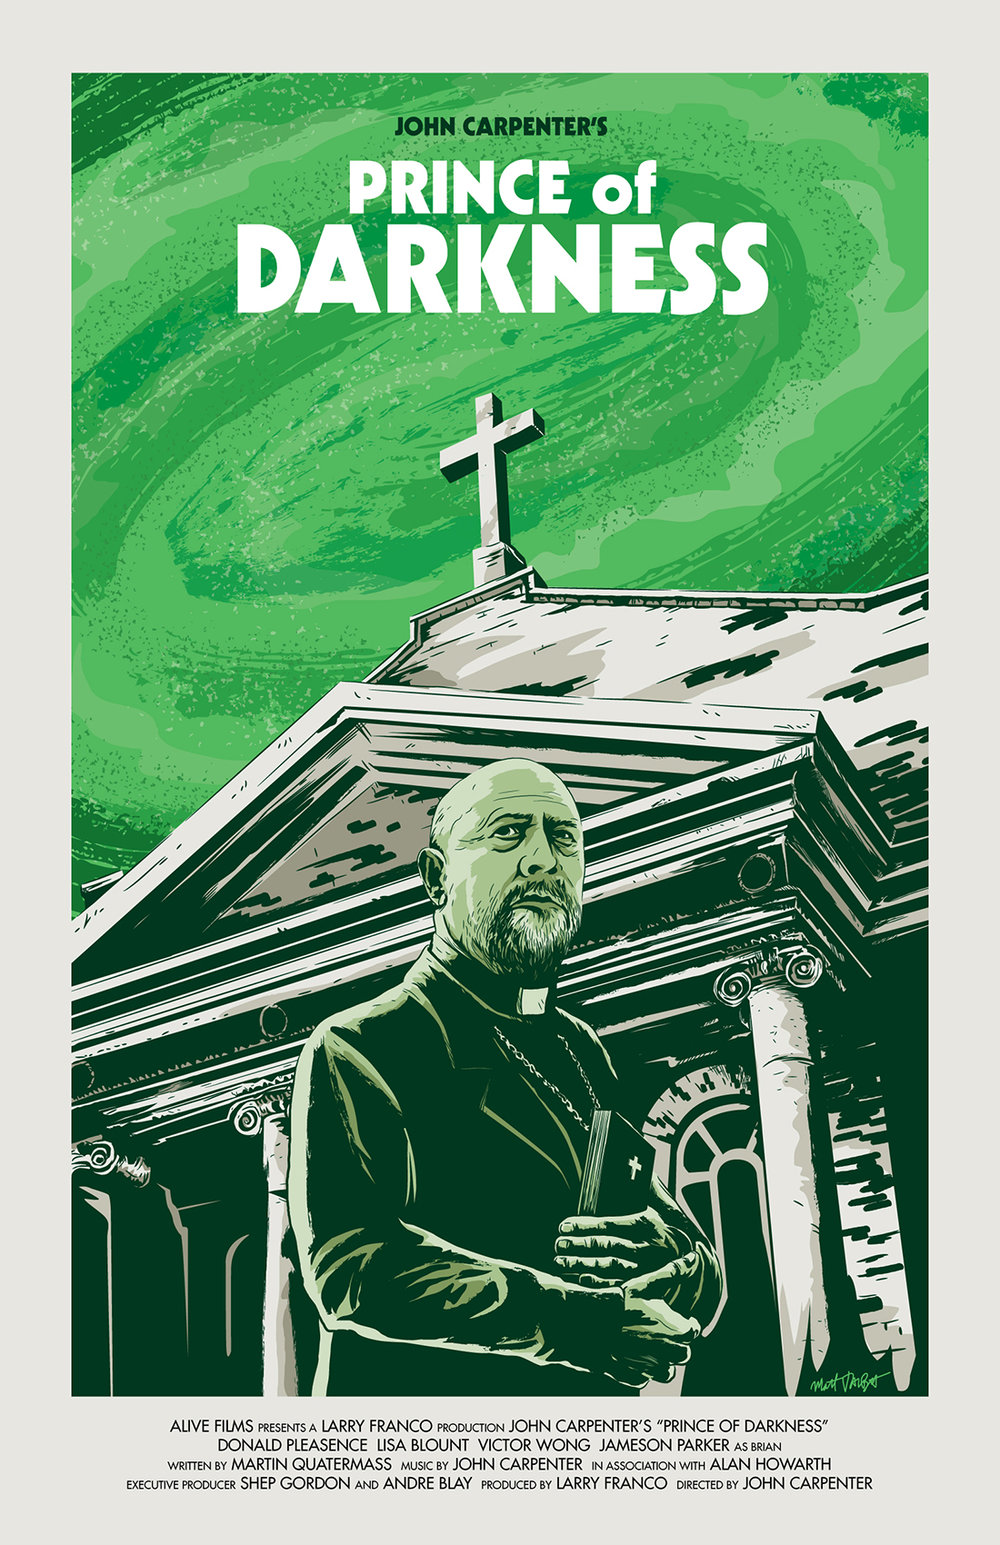 John Carpenter's Prince of Darkness poster by Matt Talbot